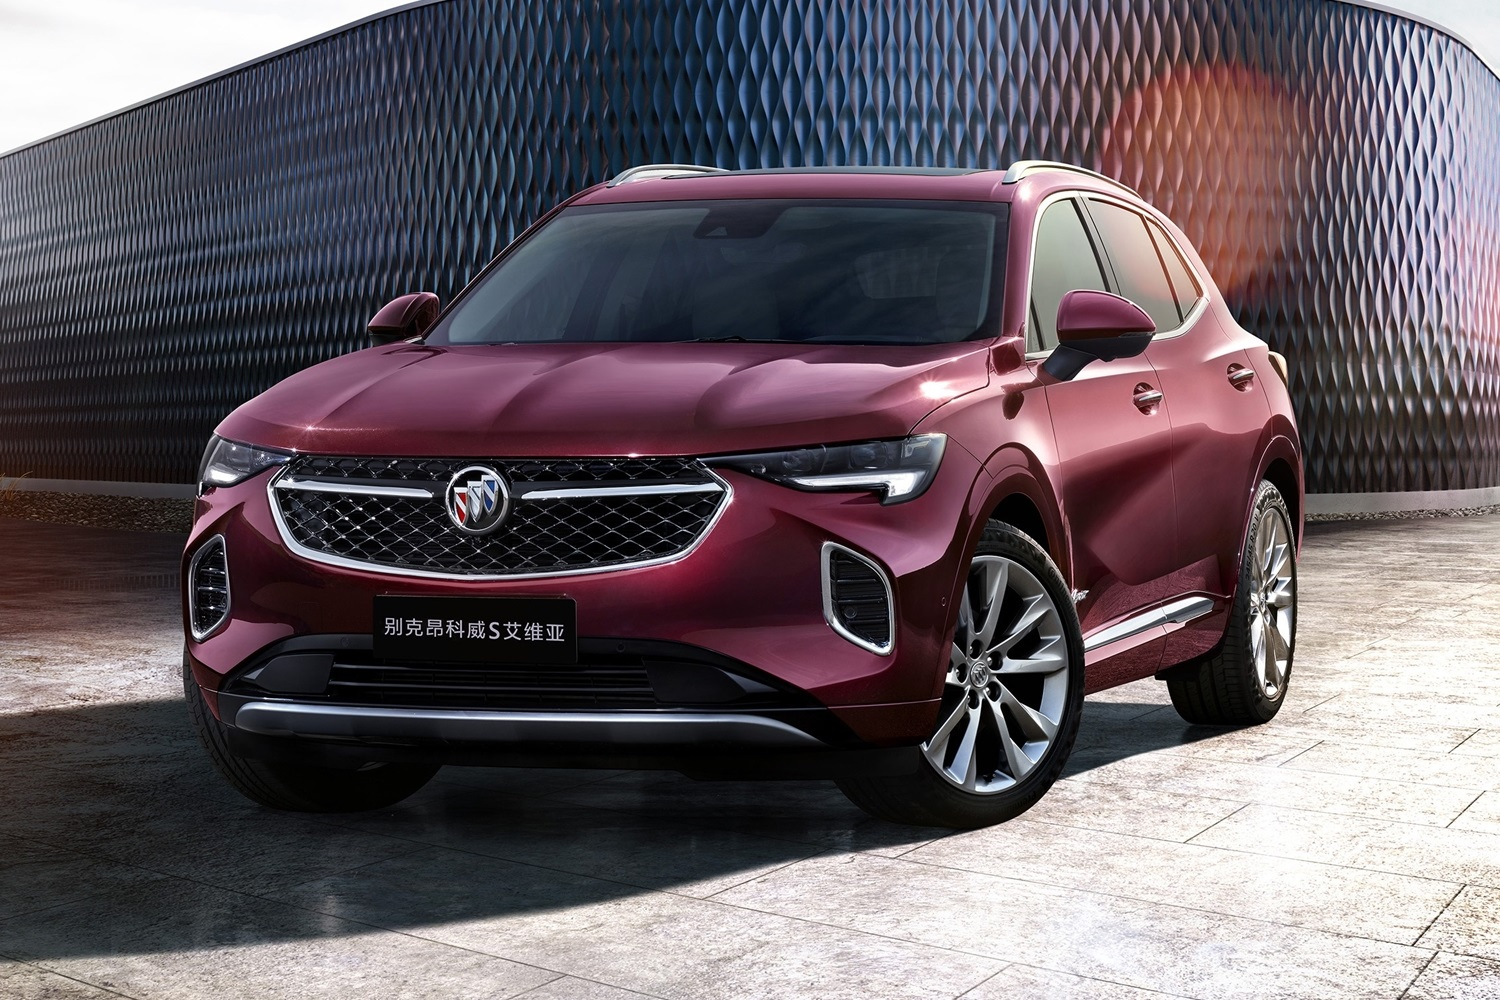 Range-Topping 2021 Buick Envision Avenir Revealed | Gm Authority 2021 Buick Verano Images, 0-60, Msrp